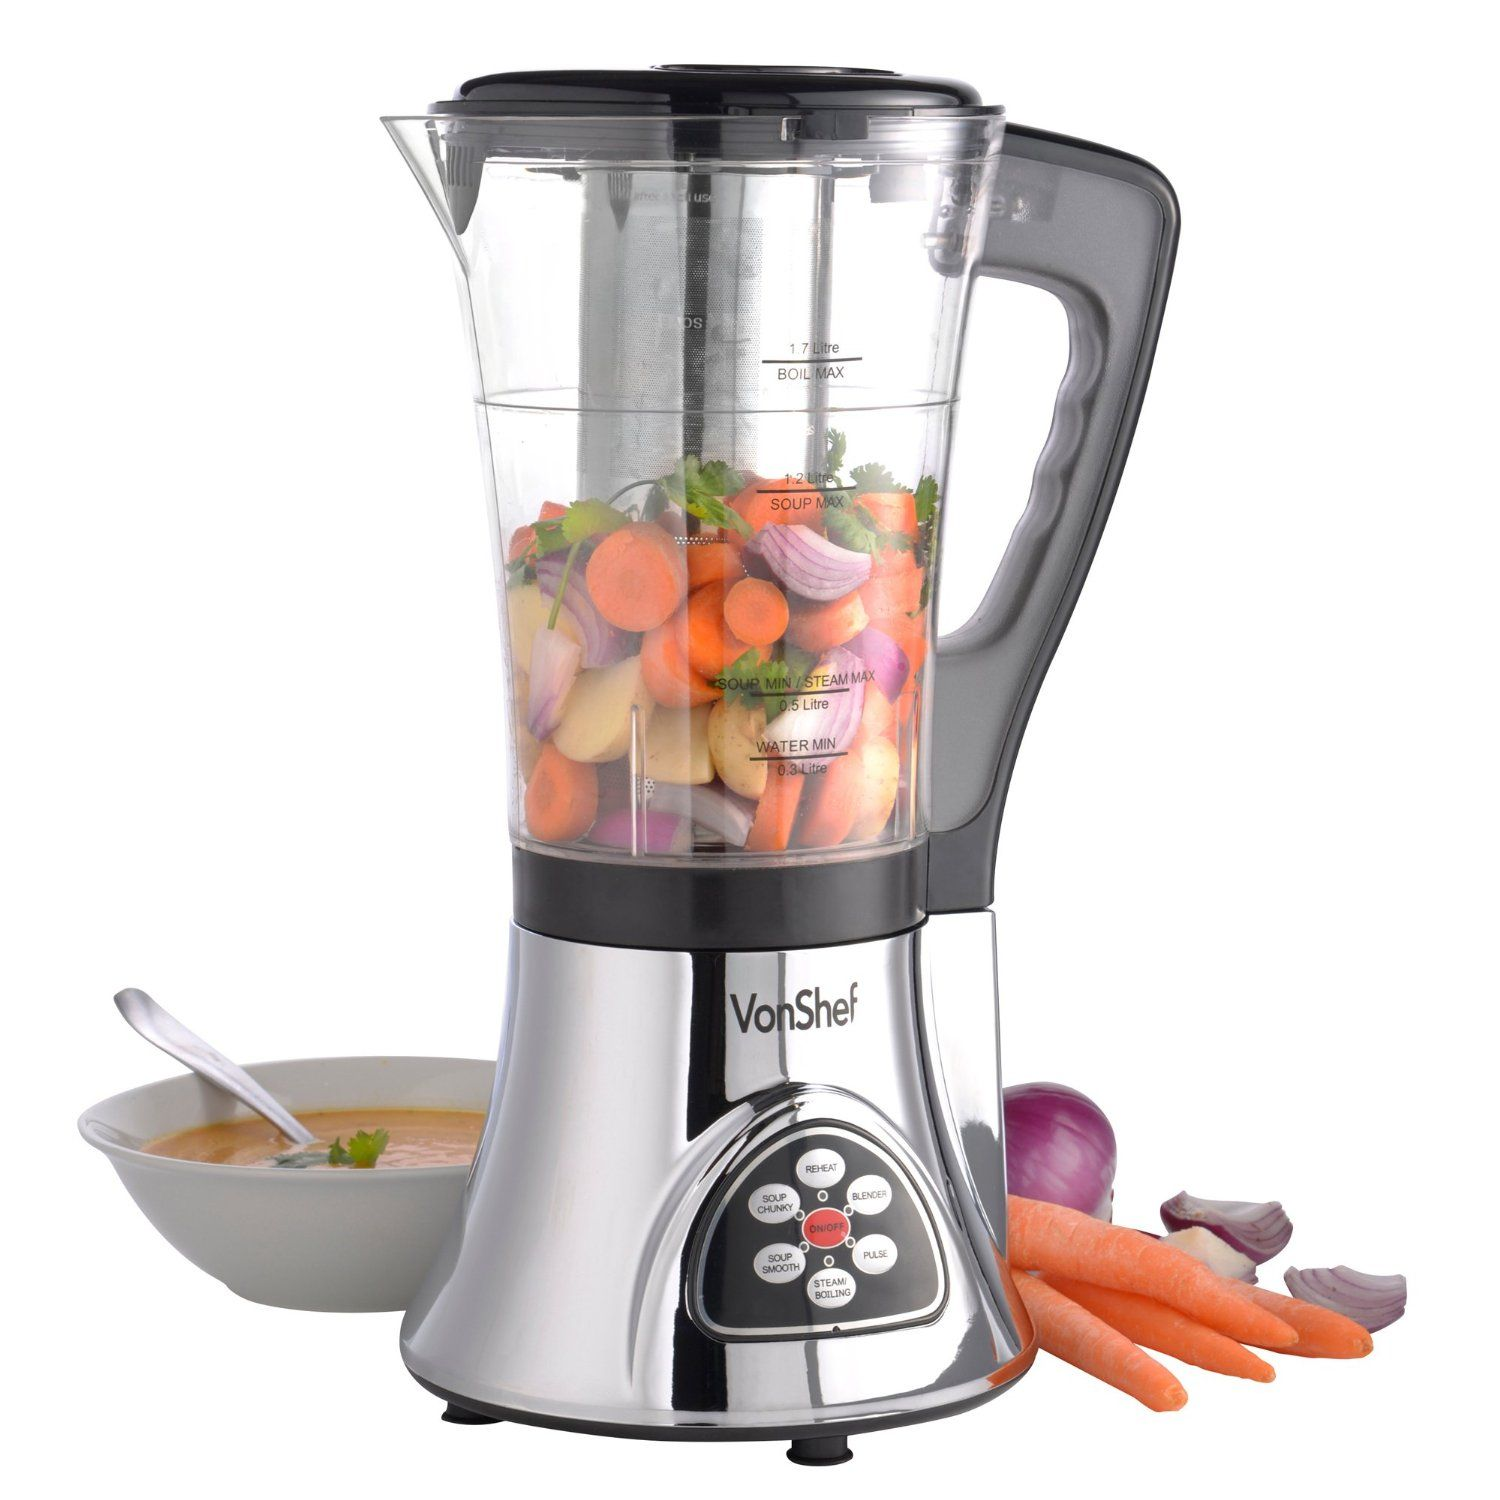 Vonshef soup maker machine smoothie maker with 200 super soups vonshef soup maker machine smoothie maker with 200 super soups recipe book amazon kitchen home used to be 9999 down to 2999 999 delivery forumfinder Gallery